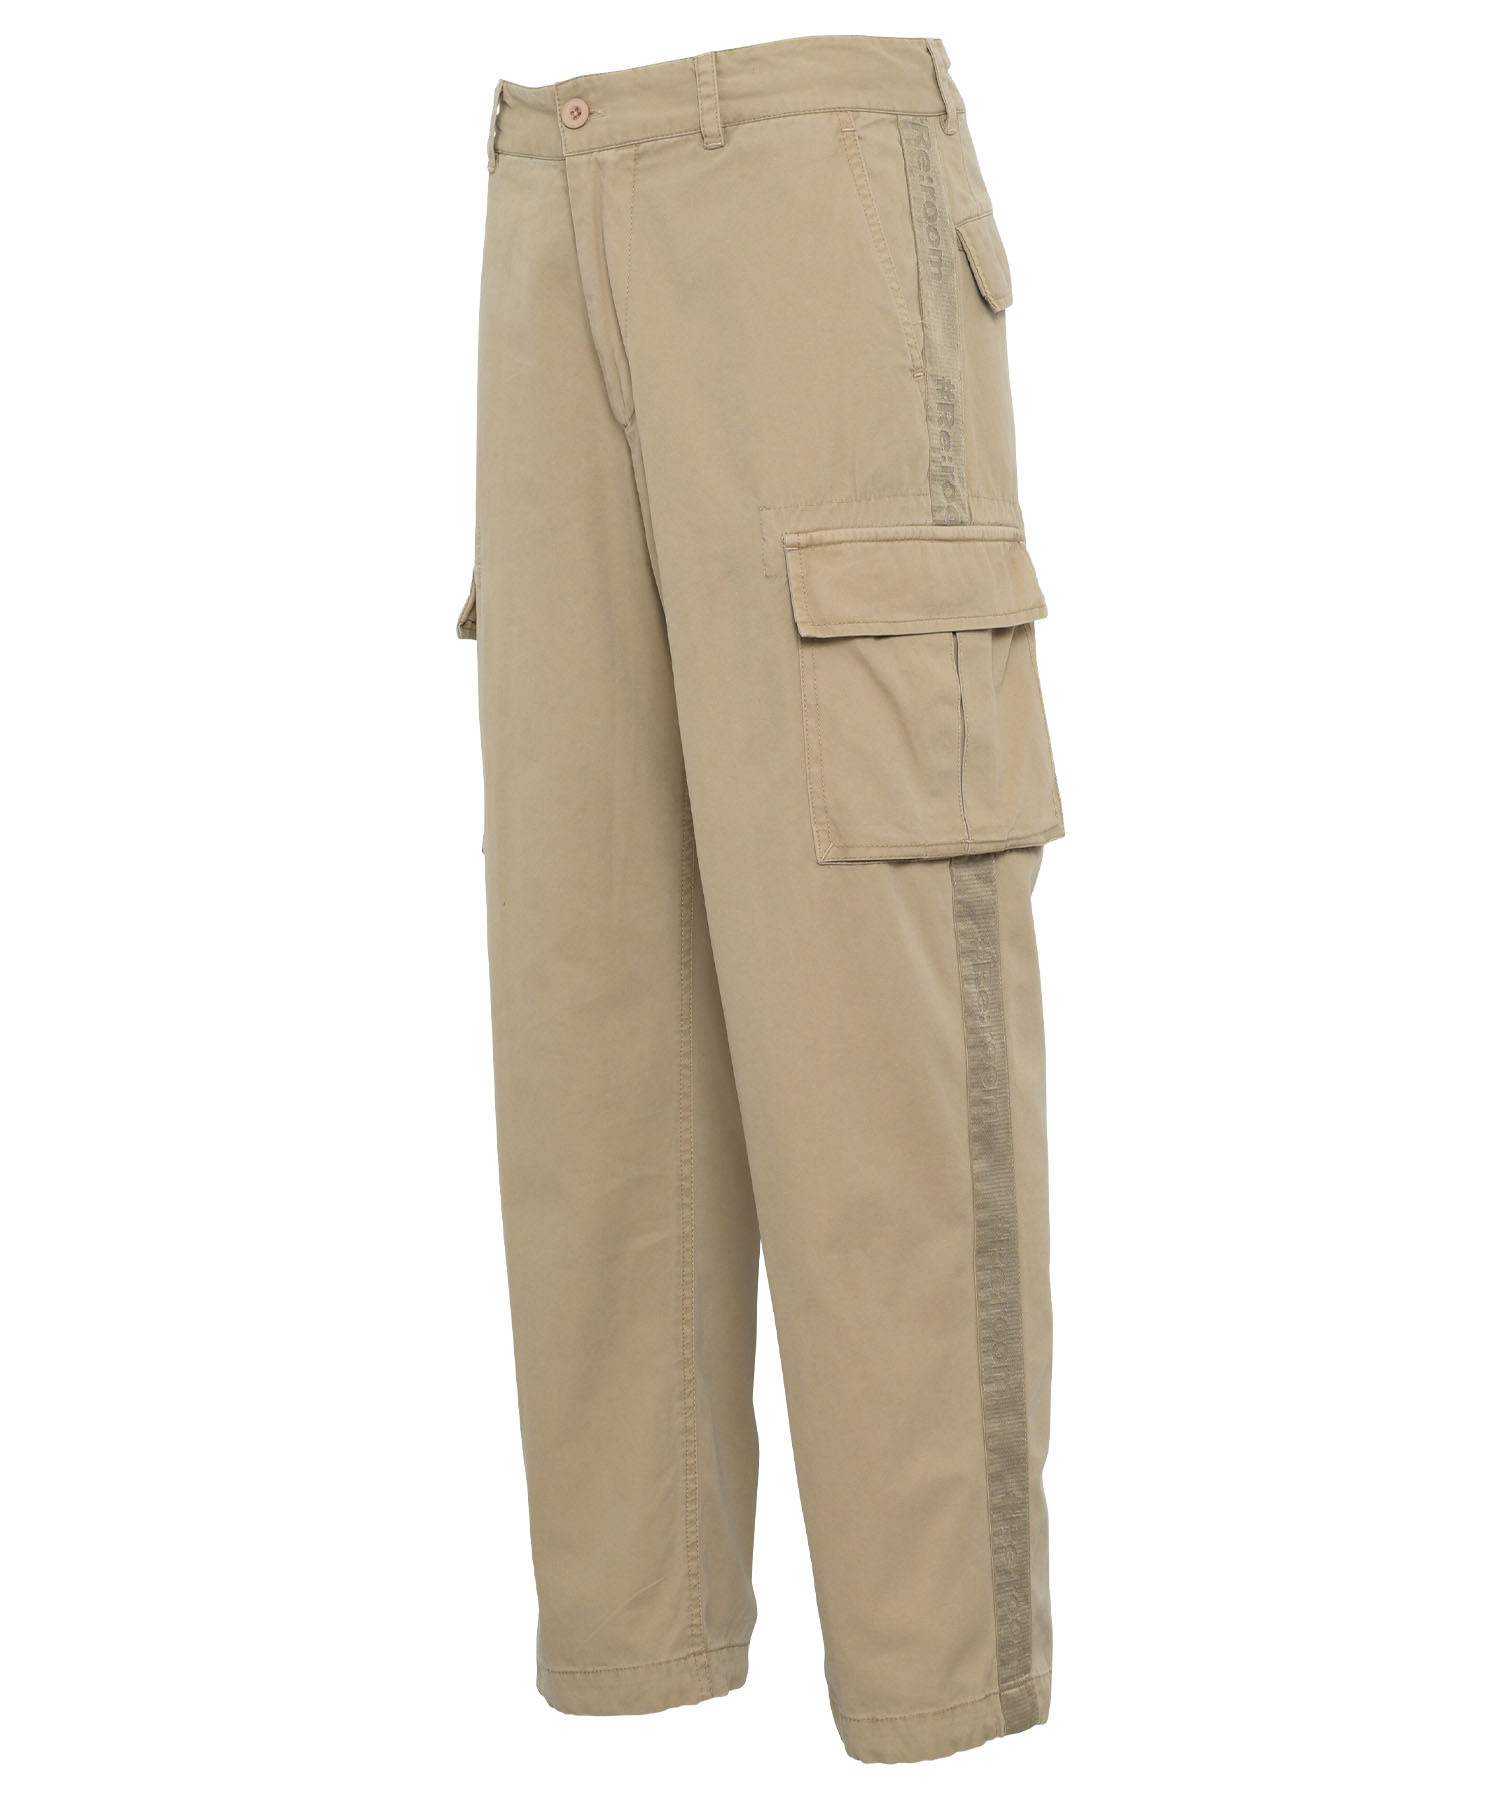 LINE TAPE VINTAGE WIDE CARGO PANTS[REP111]